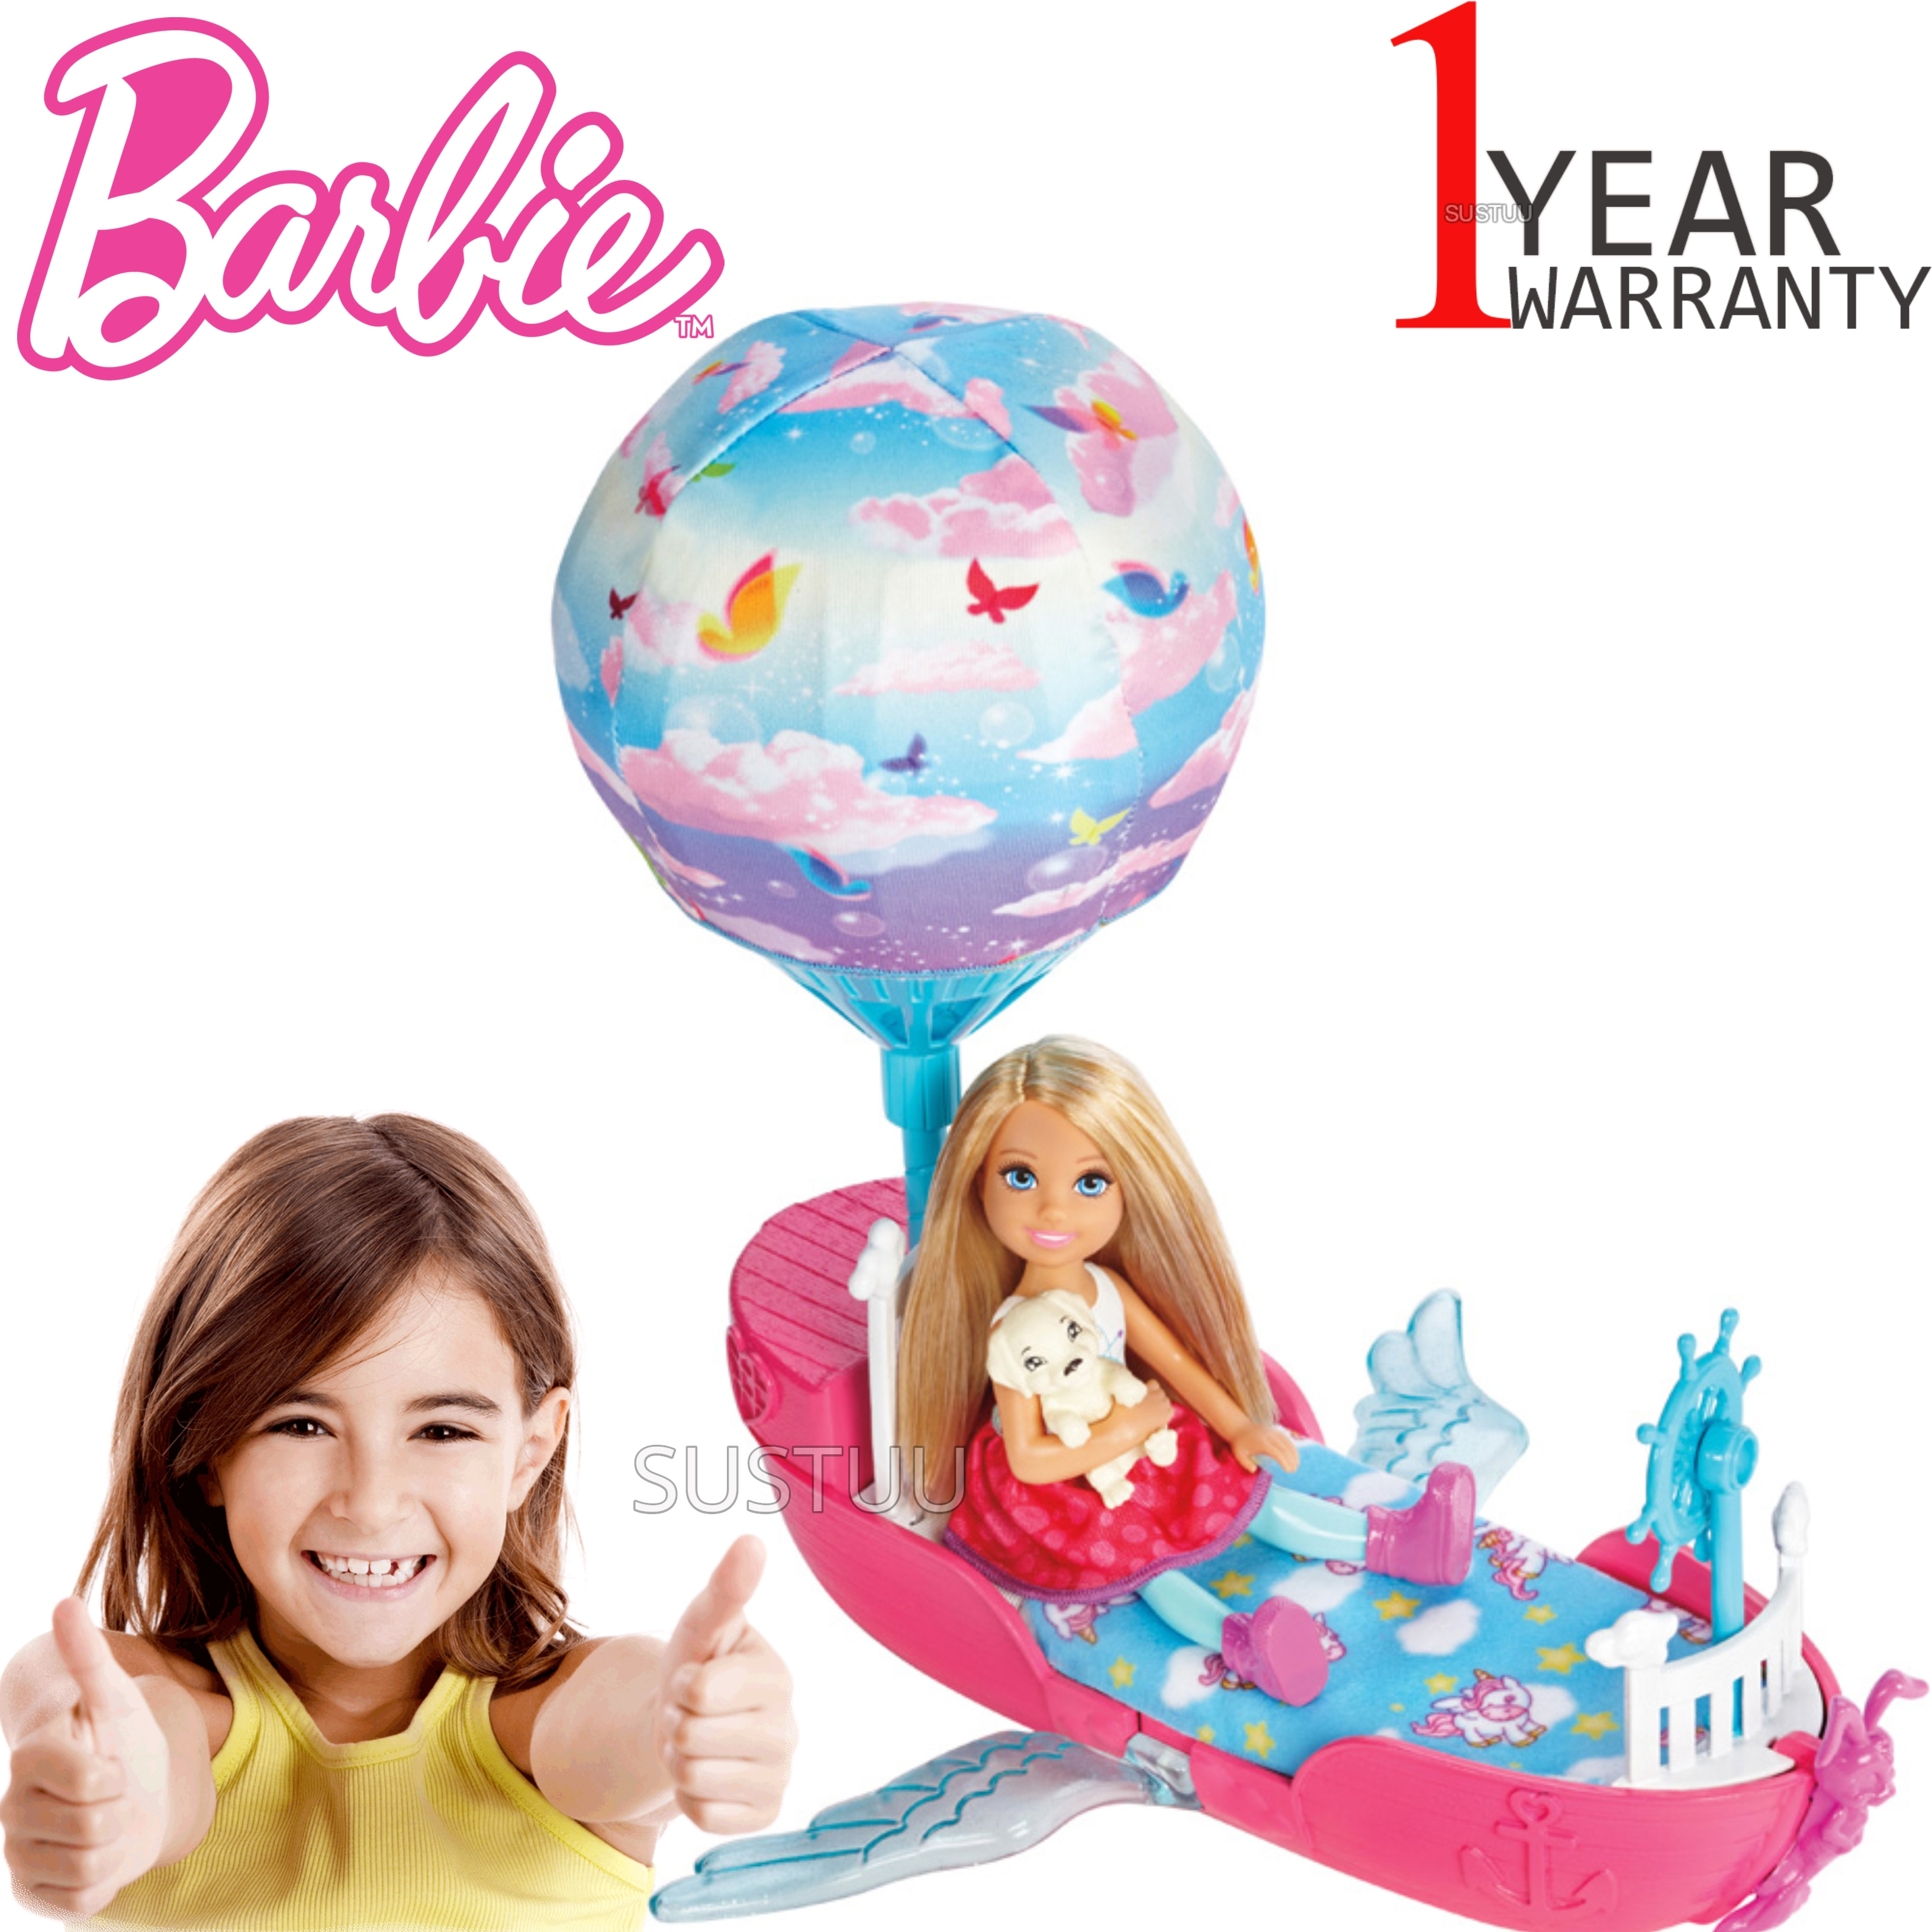 Barbie Dreamtopia Magical Dreamboat With Chelsea Doll | Baby/Toddler's Playset | +3 Years